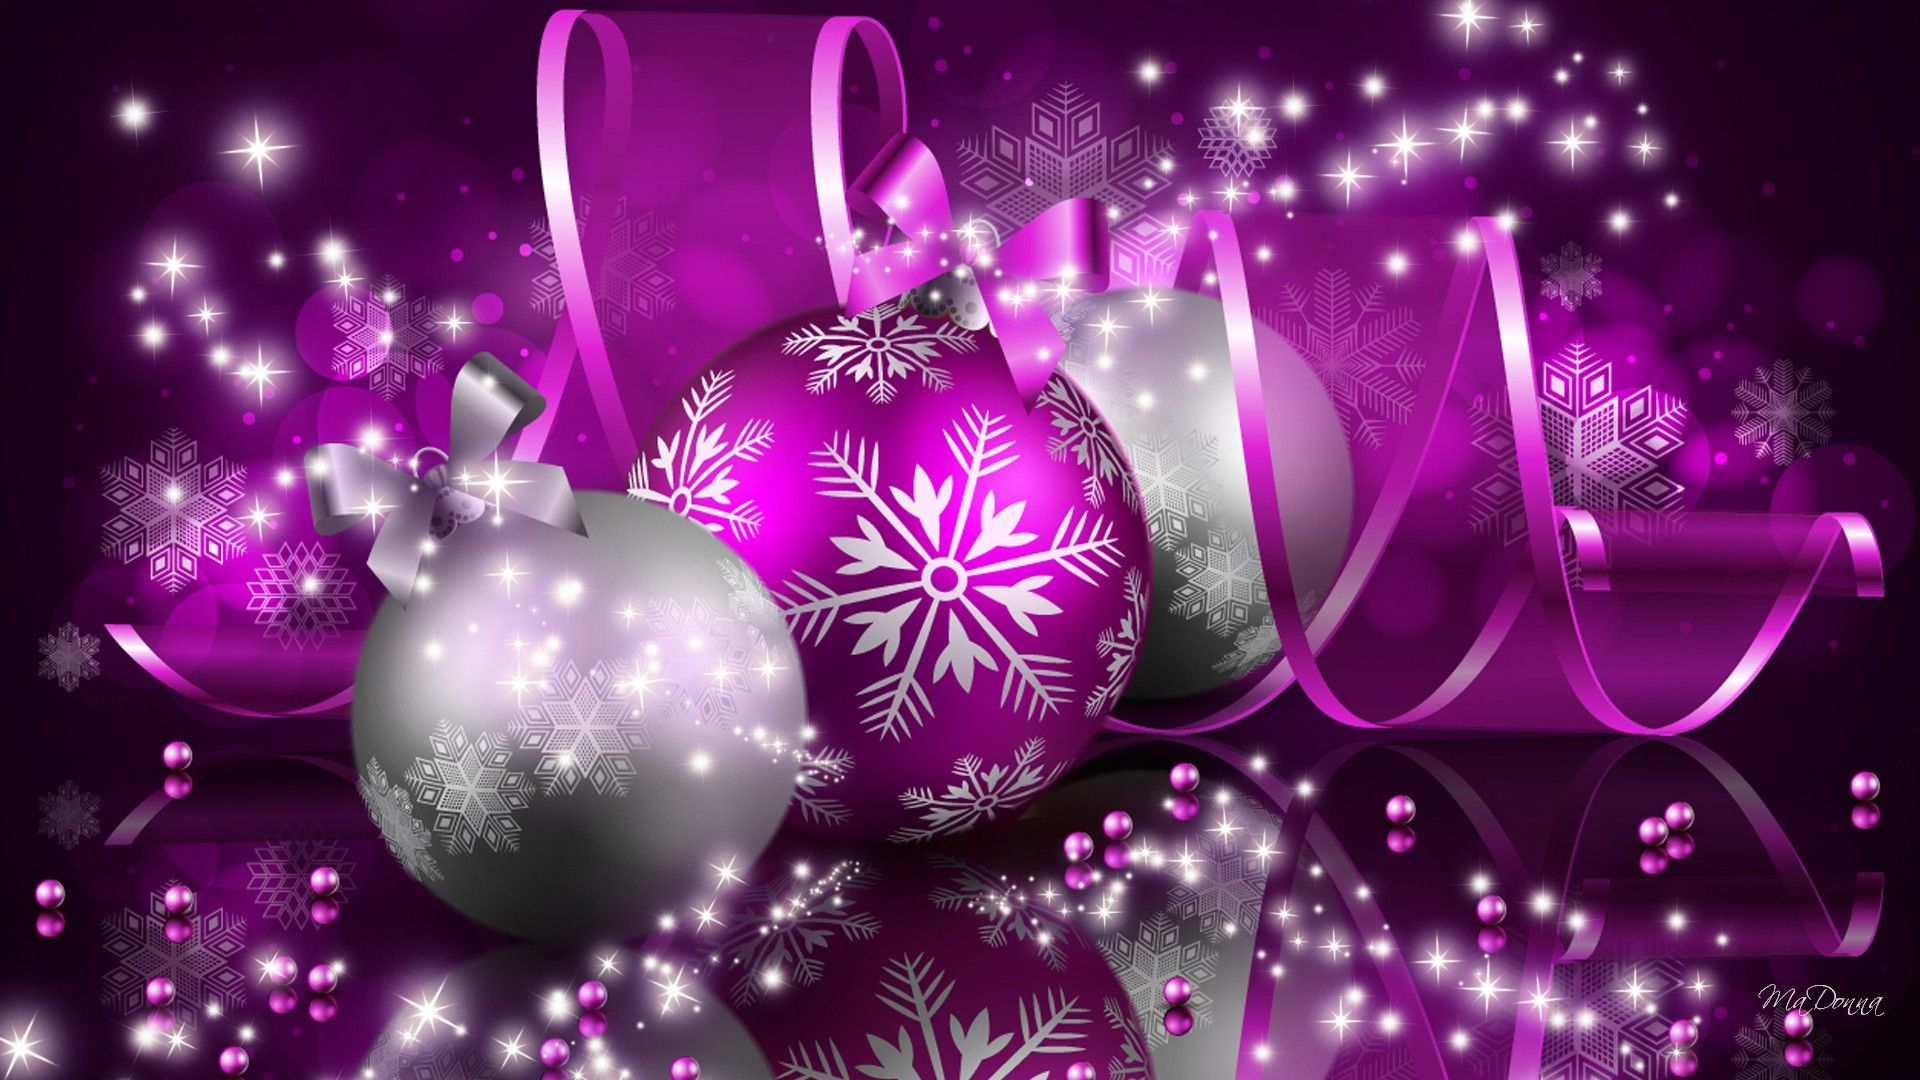 purple christmas wallpaper desktop | purple designer christmas